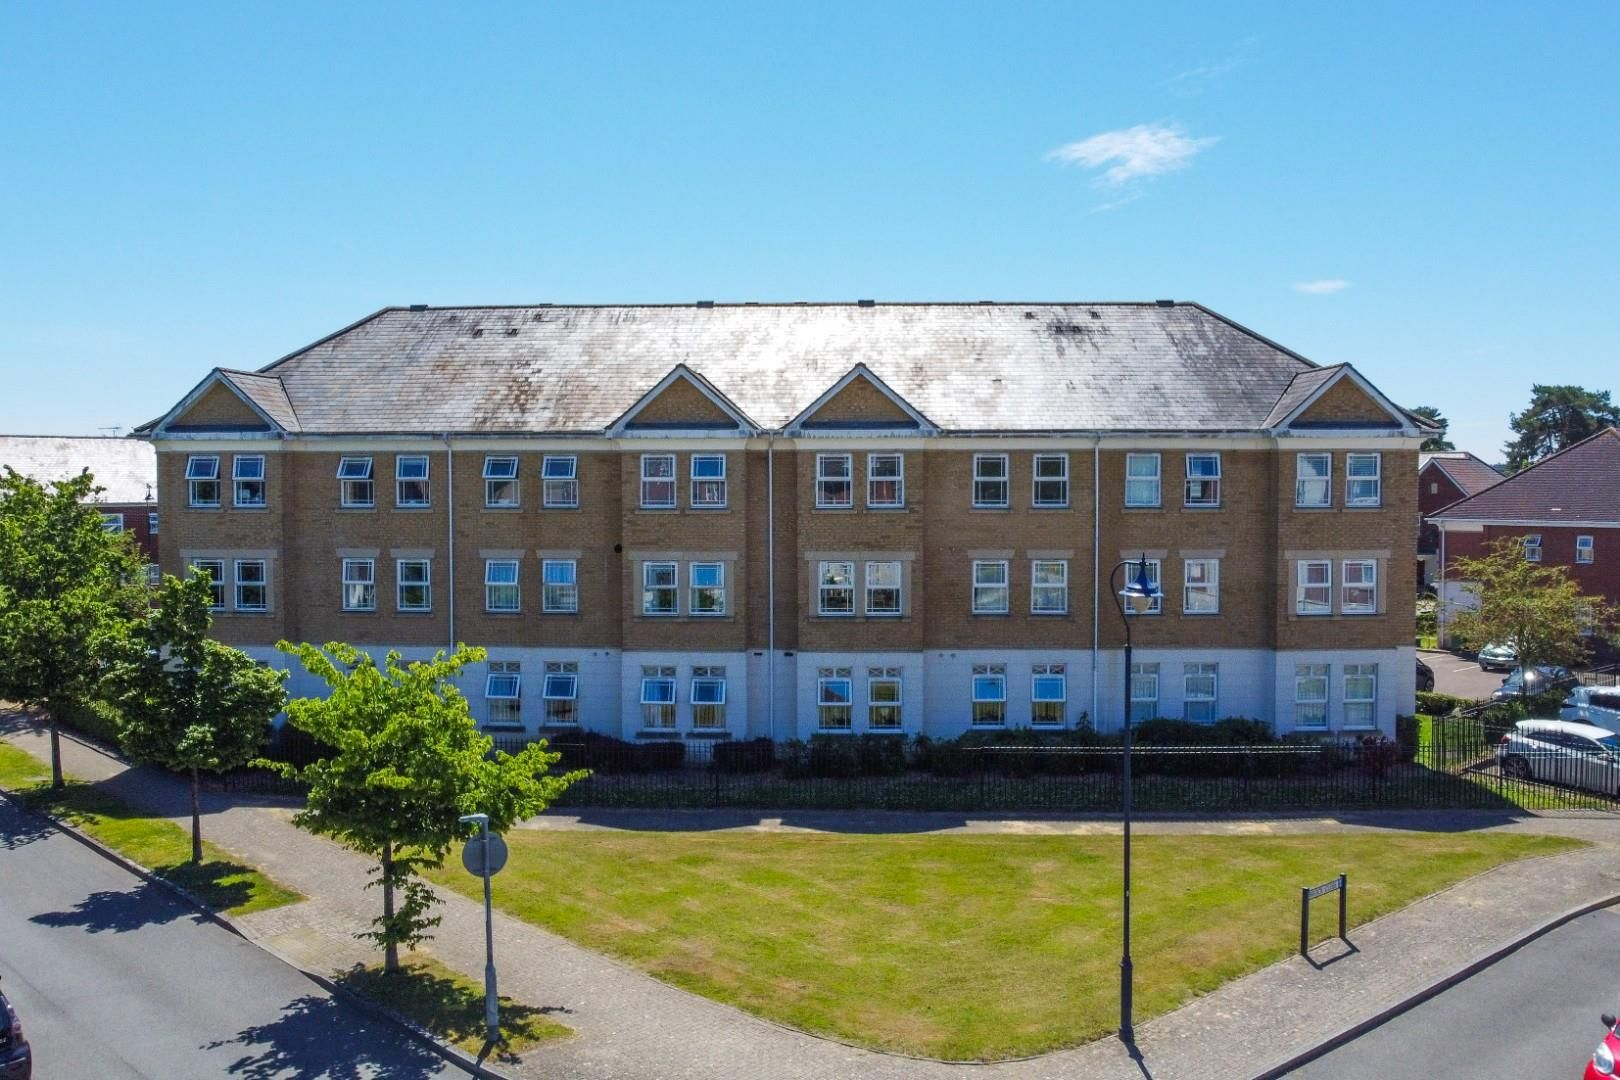 2 bed apartment for sale in Deepcut, GU16